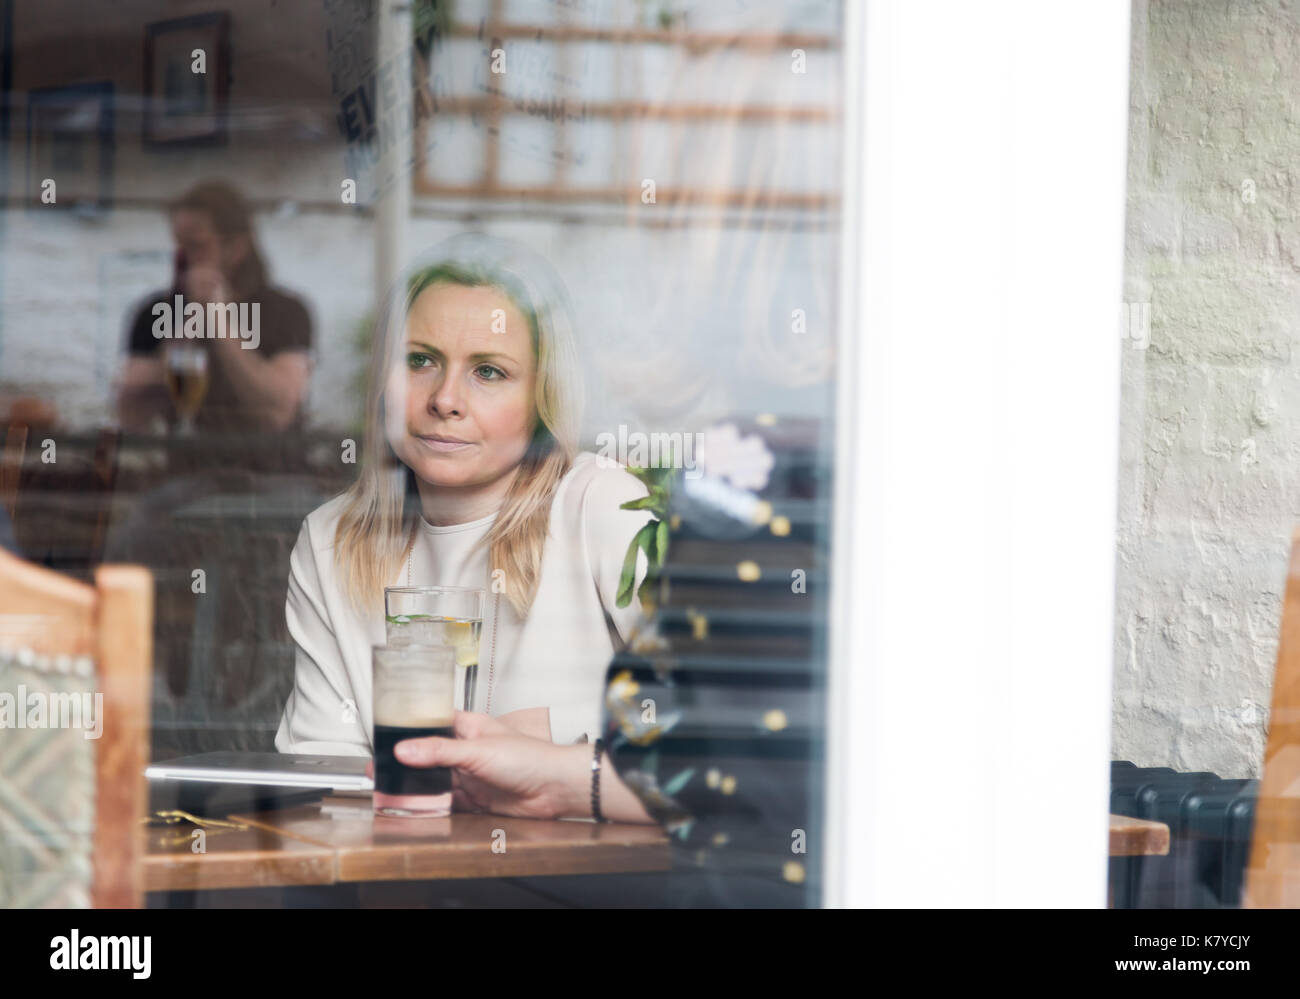 Pensive blonde attractive young adult single woman in pub. Shot through window with reflections on glass - Stock Image